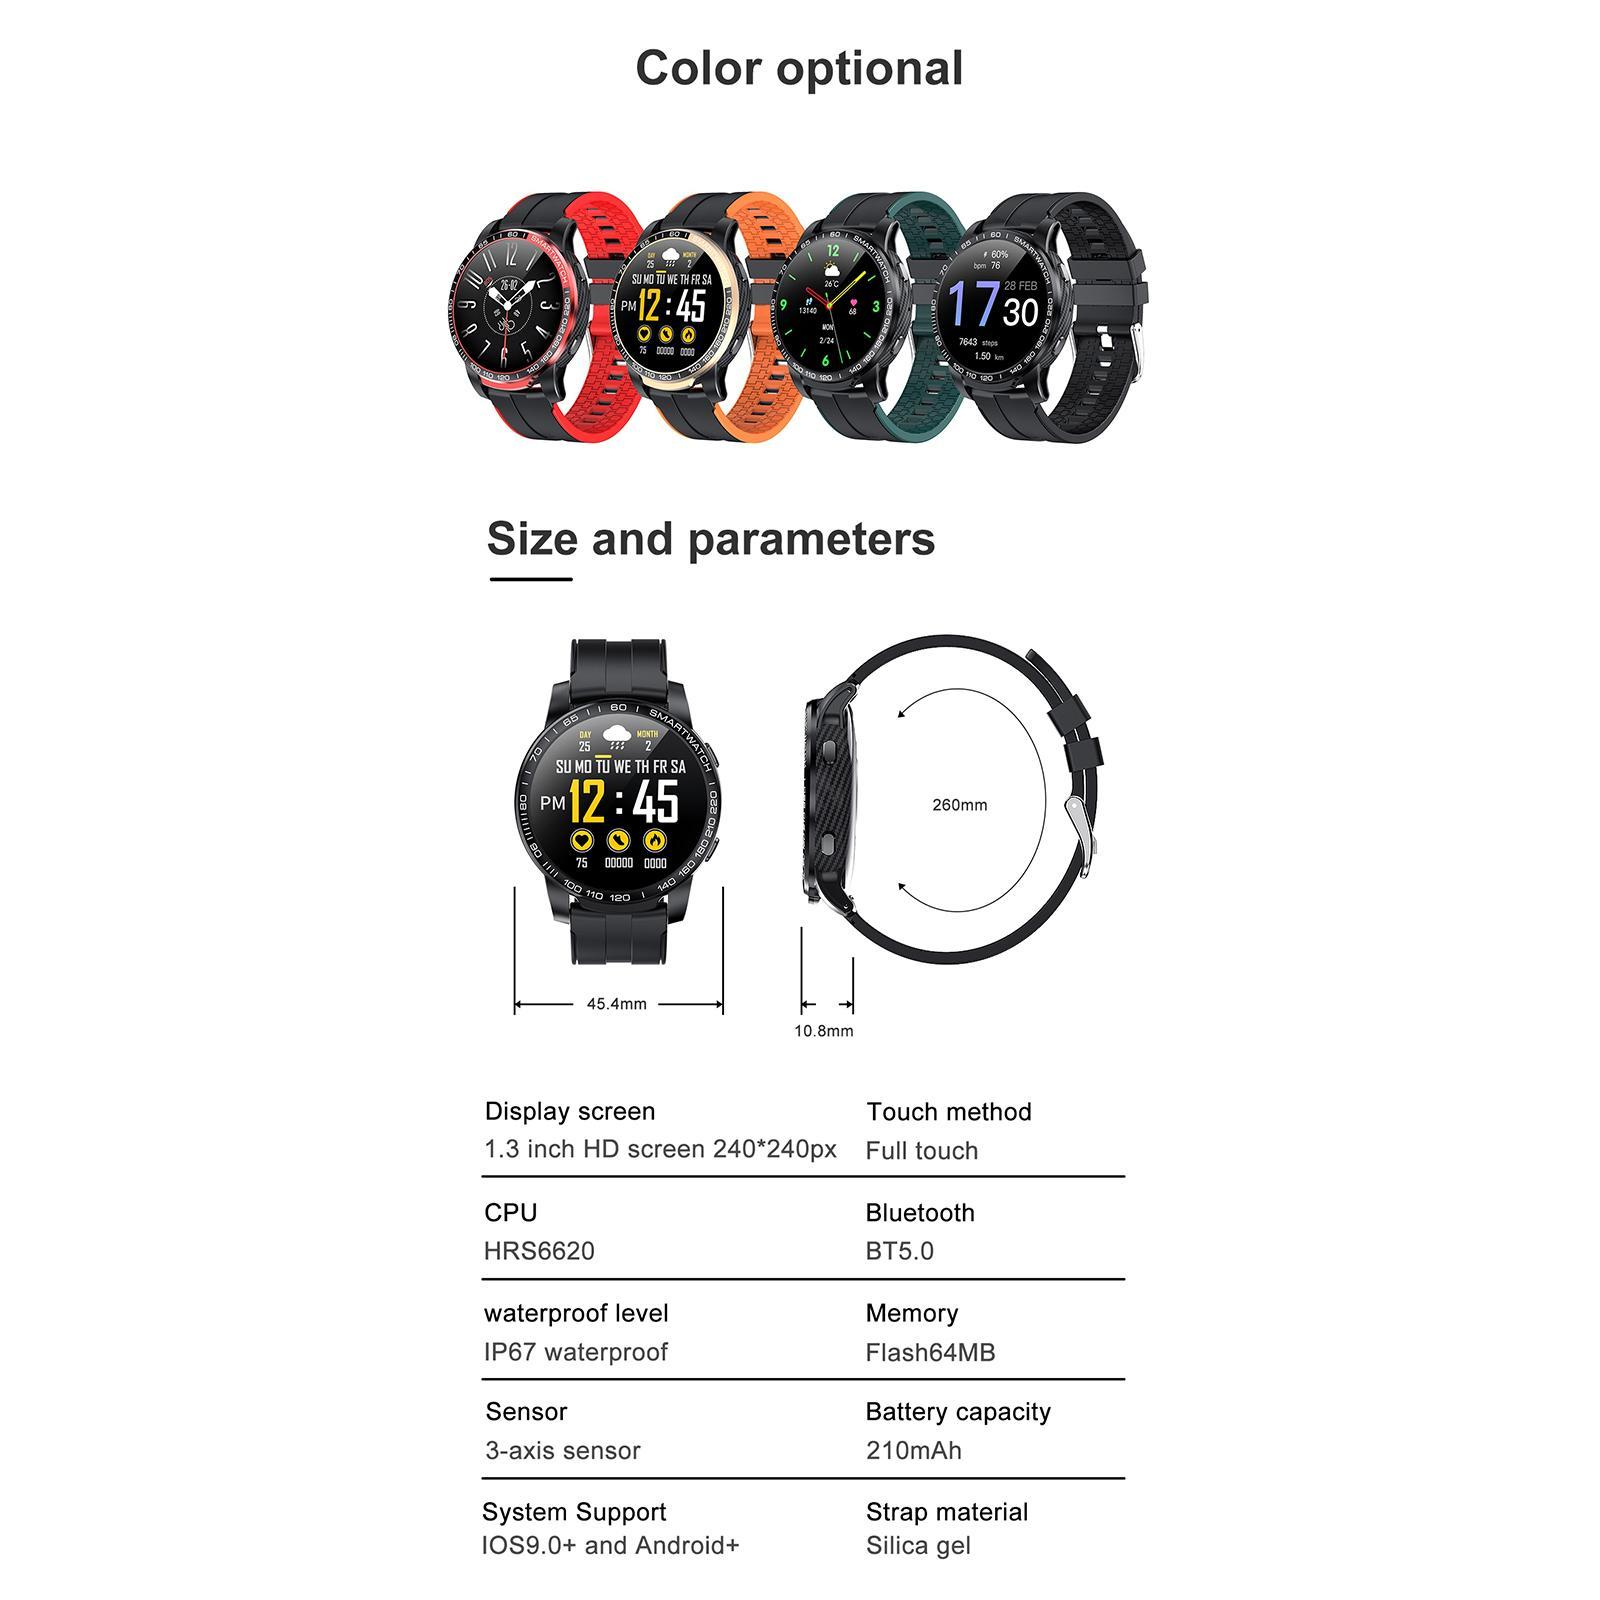 Hommes-Smart-Watch-Bluetooth-Call-Fitness-Tracker-frequence-cardiaque-sommeil miniature 12